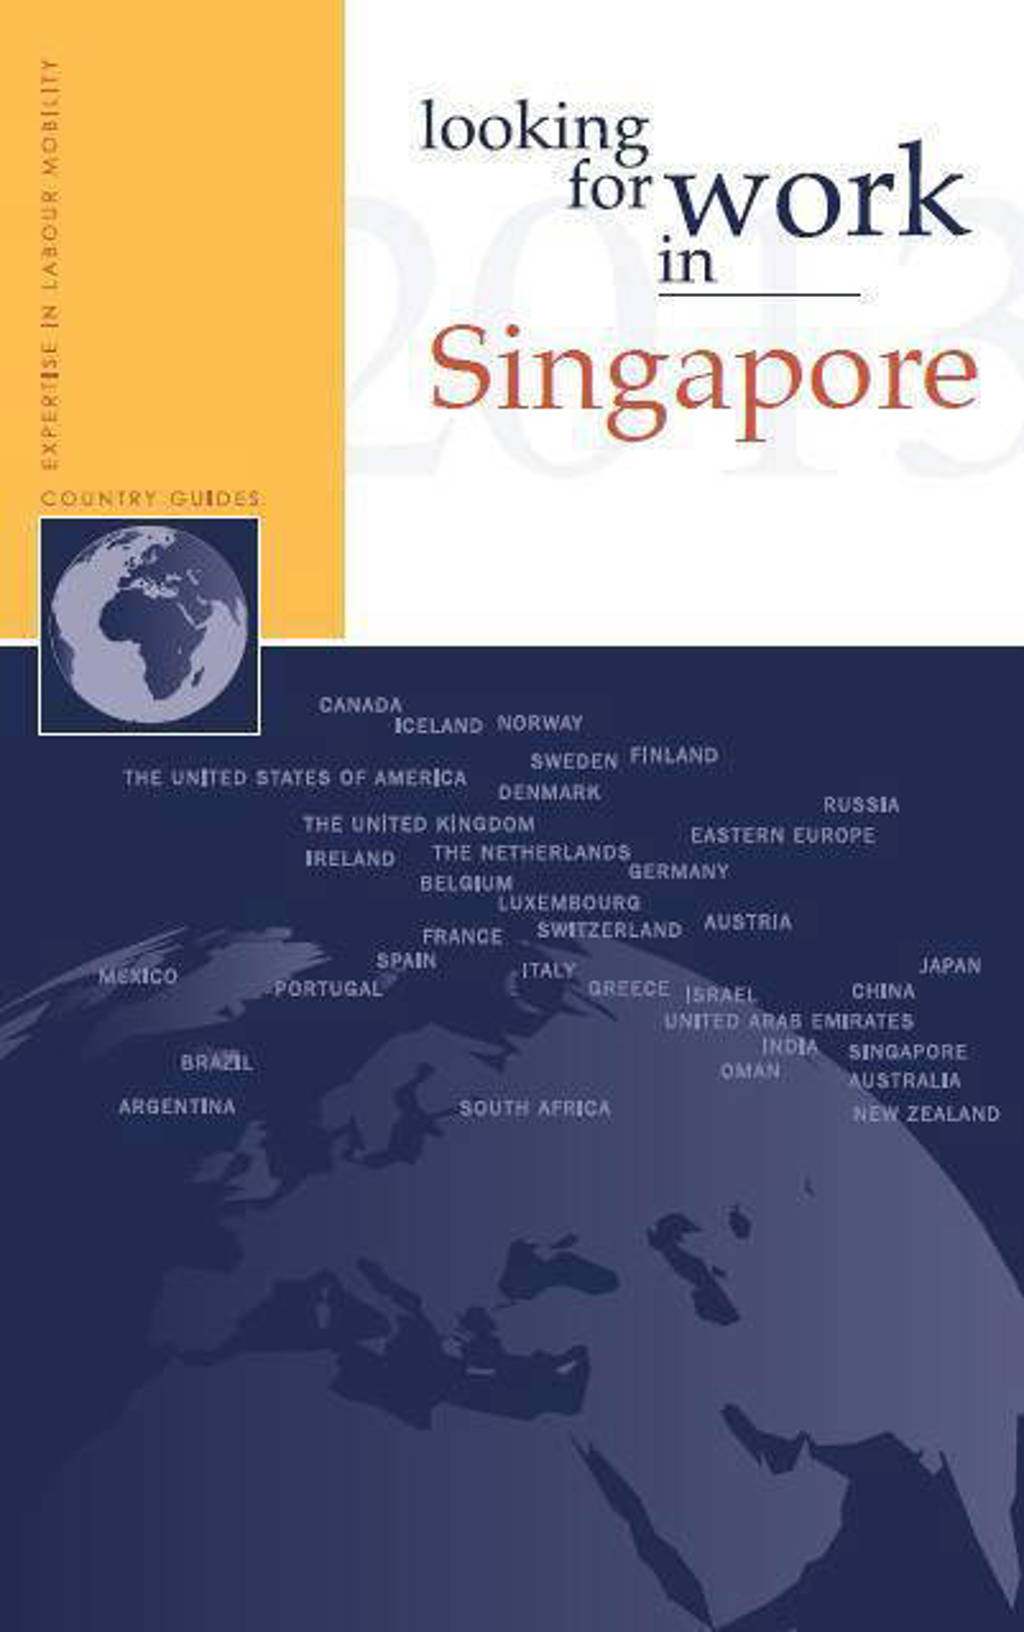 Looking for work in...: Looking for work in Singapore - A.M. Ripmeester en Archie Pollock